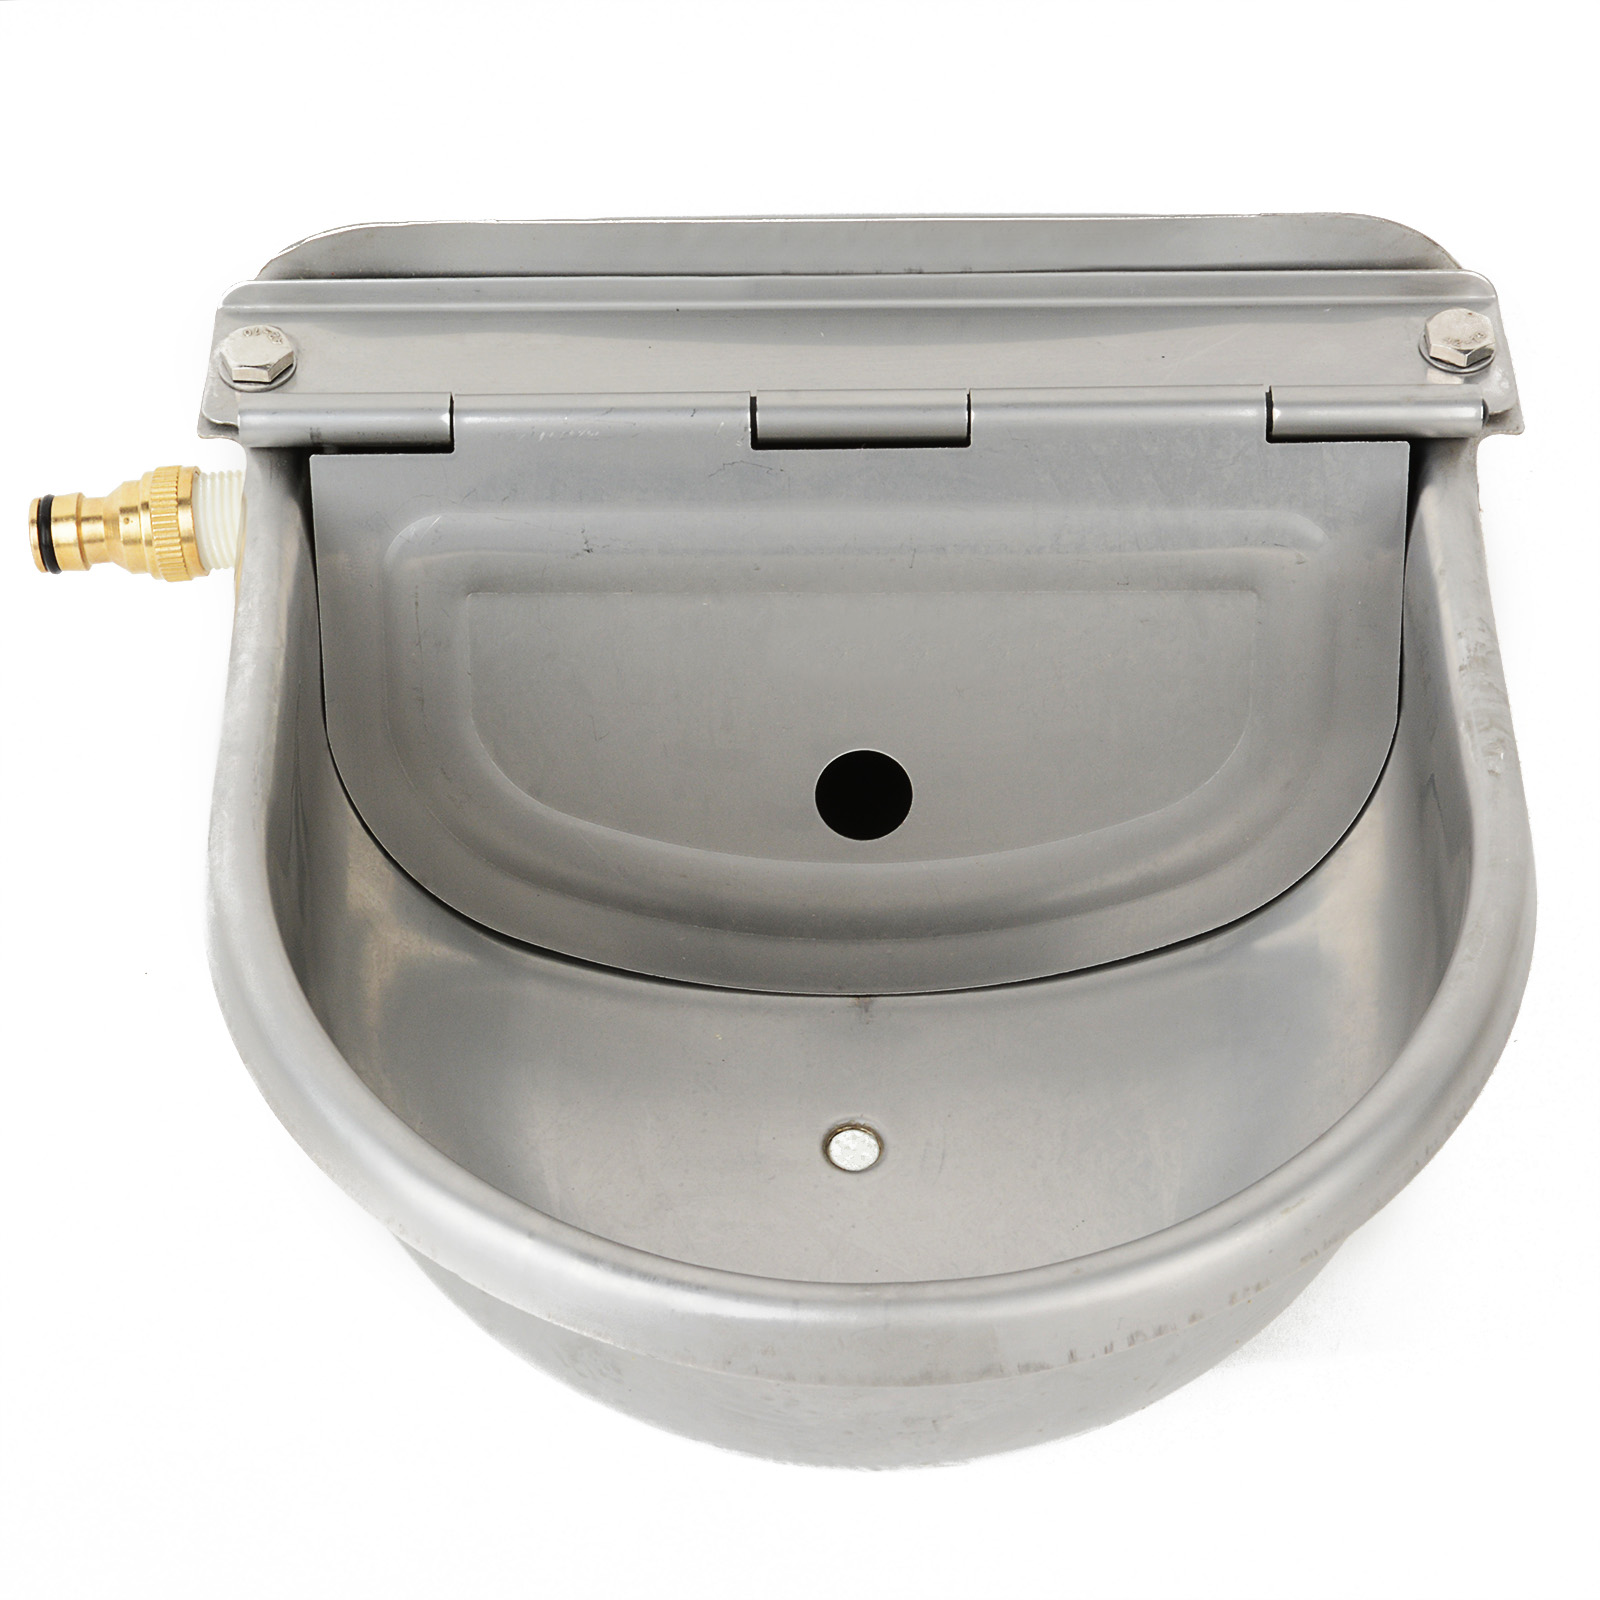 4L Automatic Water Trough Stainless Steel Sheep Dog Chicken Cow Auto Fill Bowl Feeding Watering Supplies MAYITR